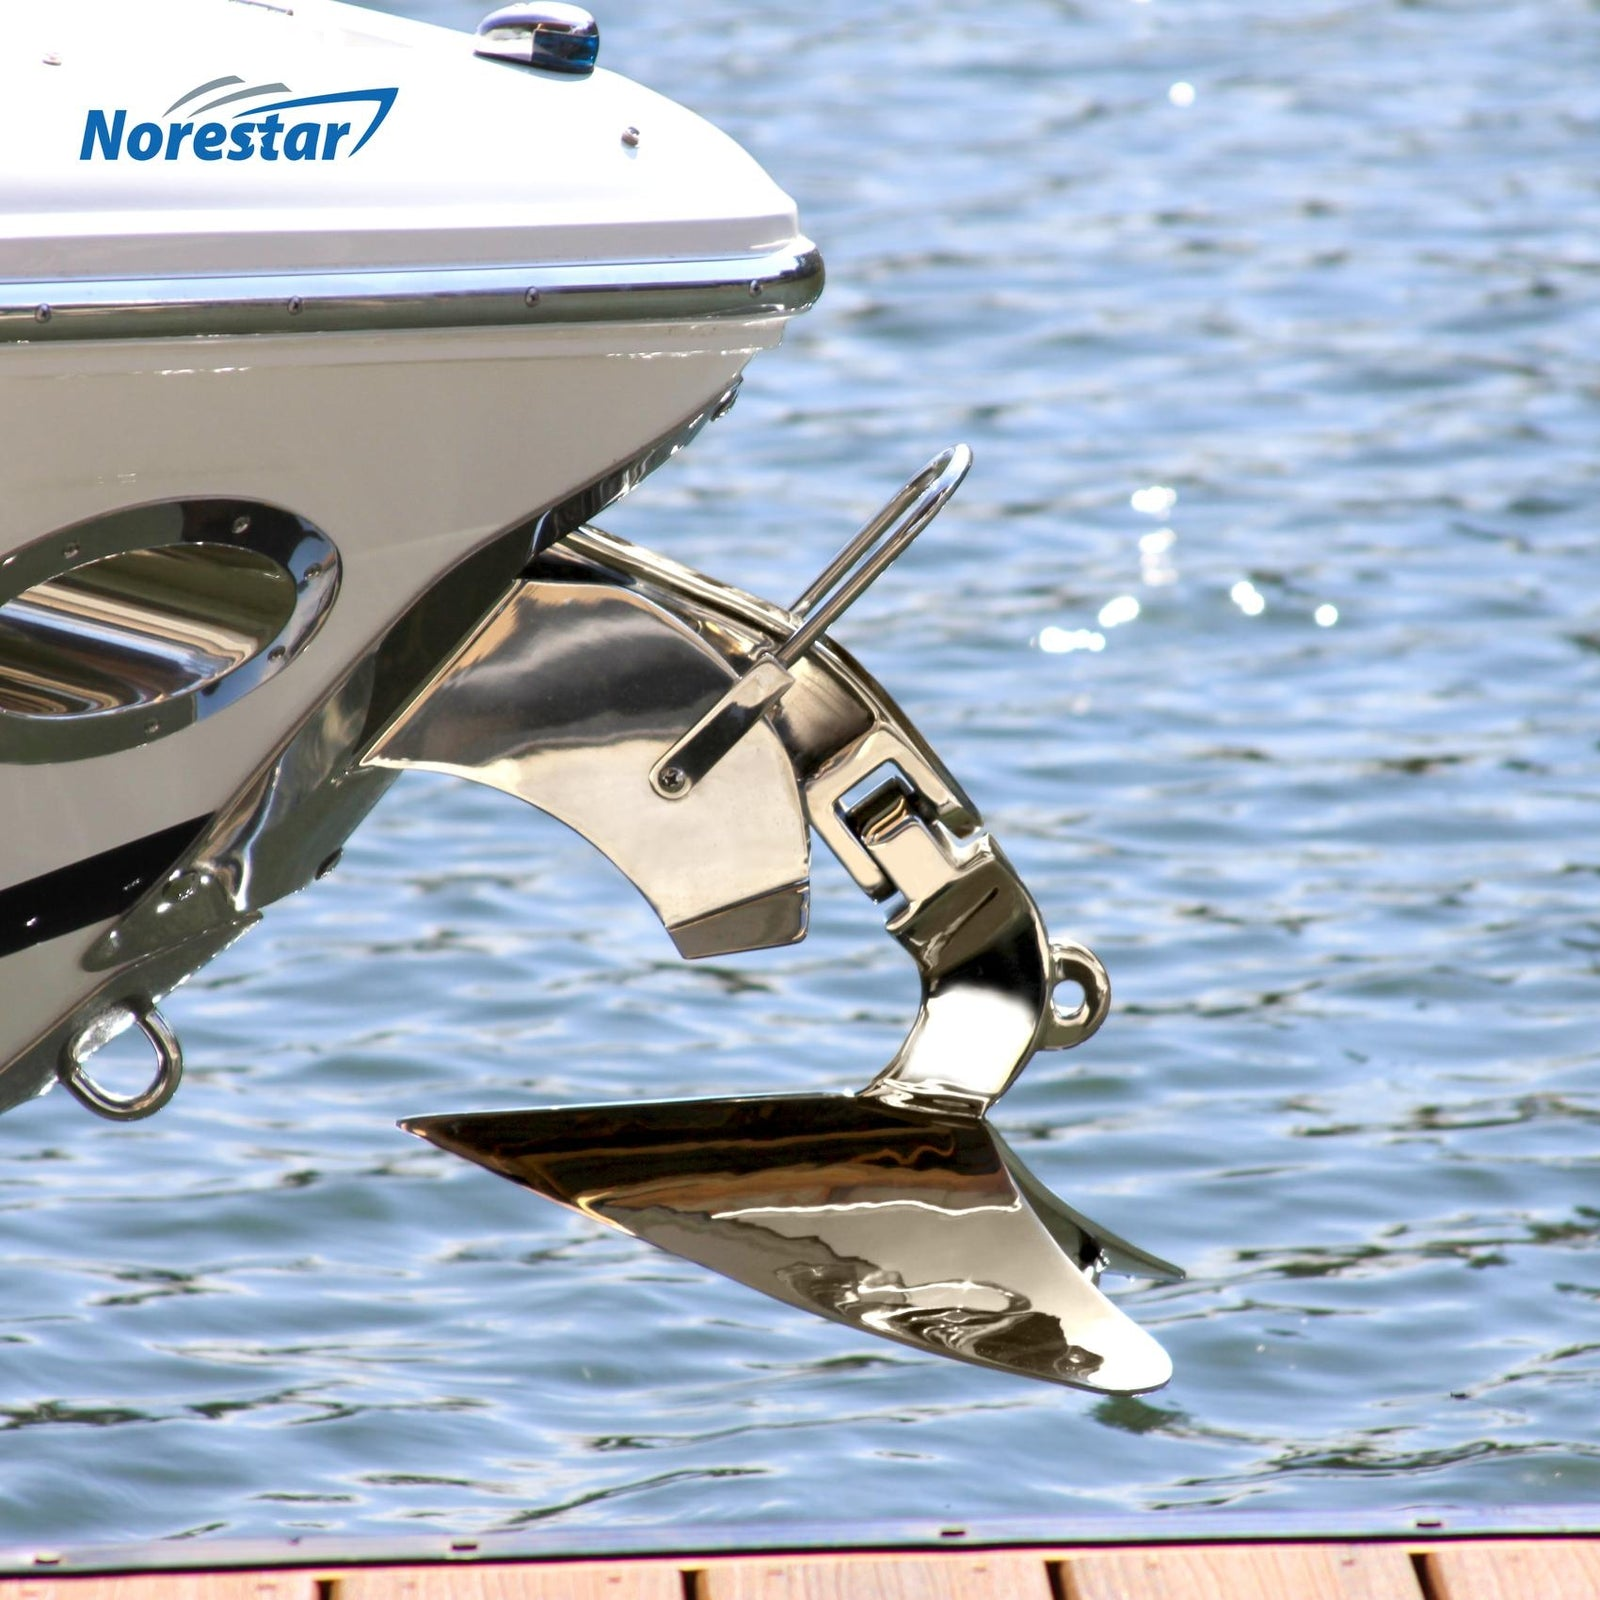 Norestar Stainless Steel Plow-Style Boat Anchor On Boat  Side